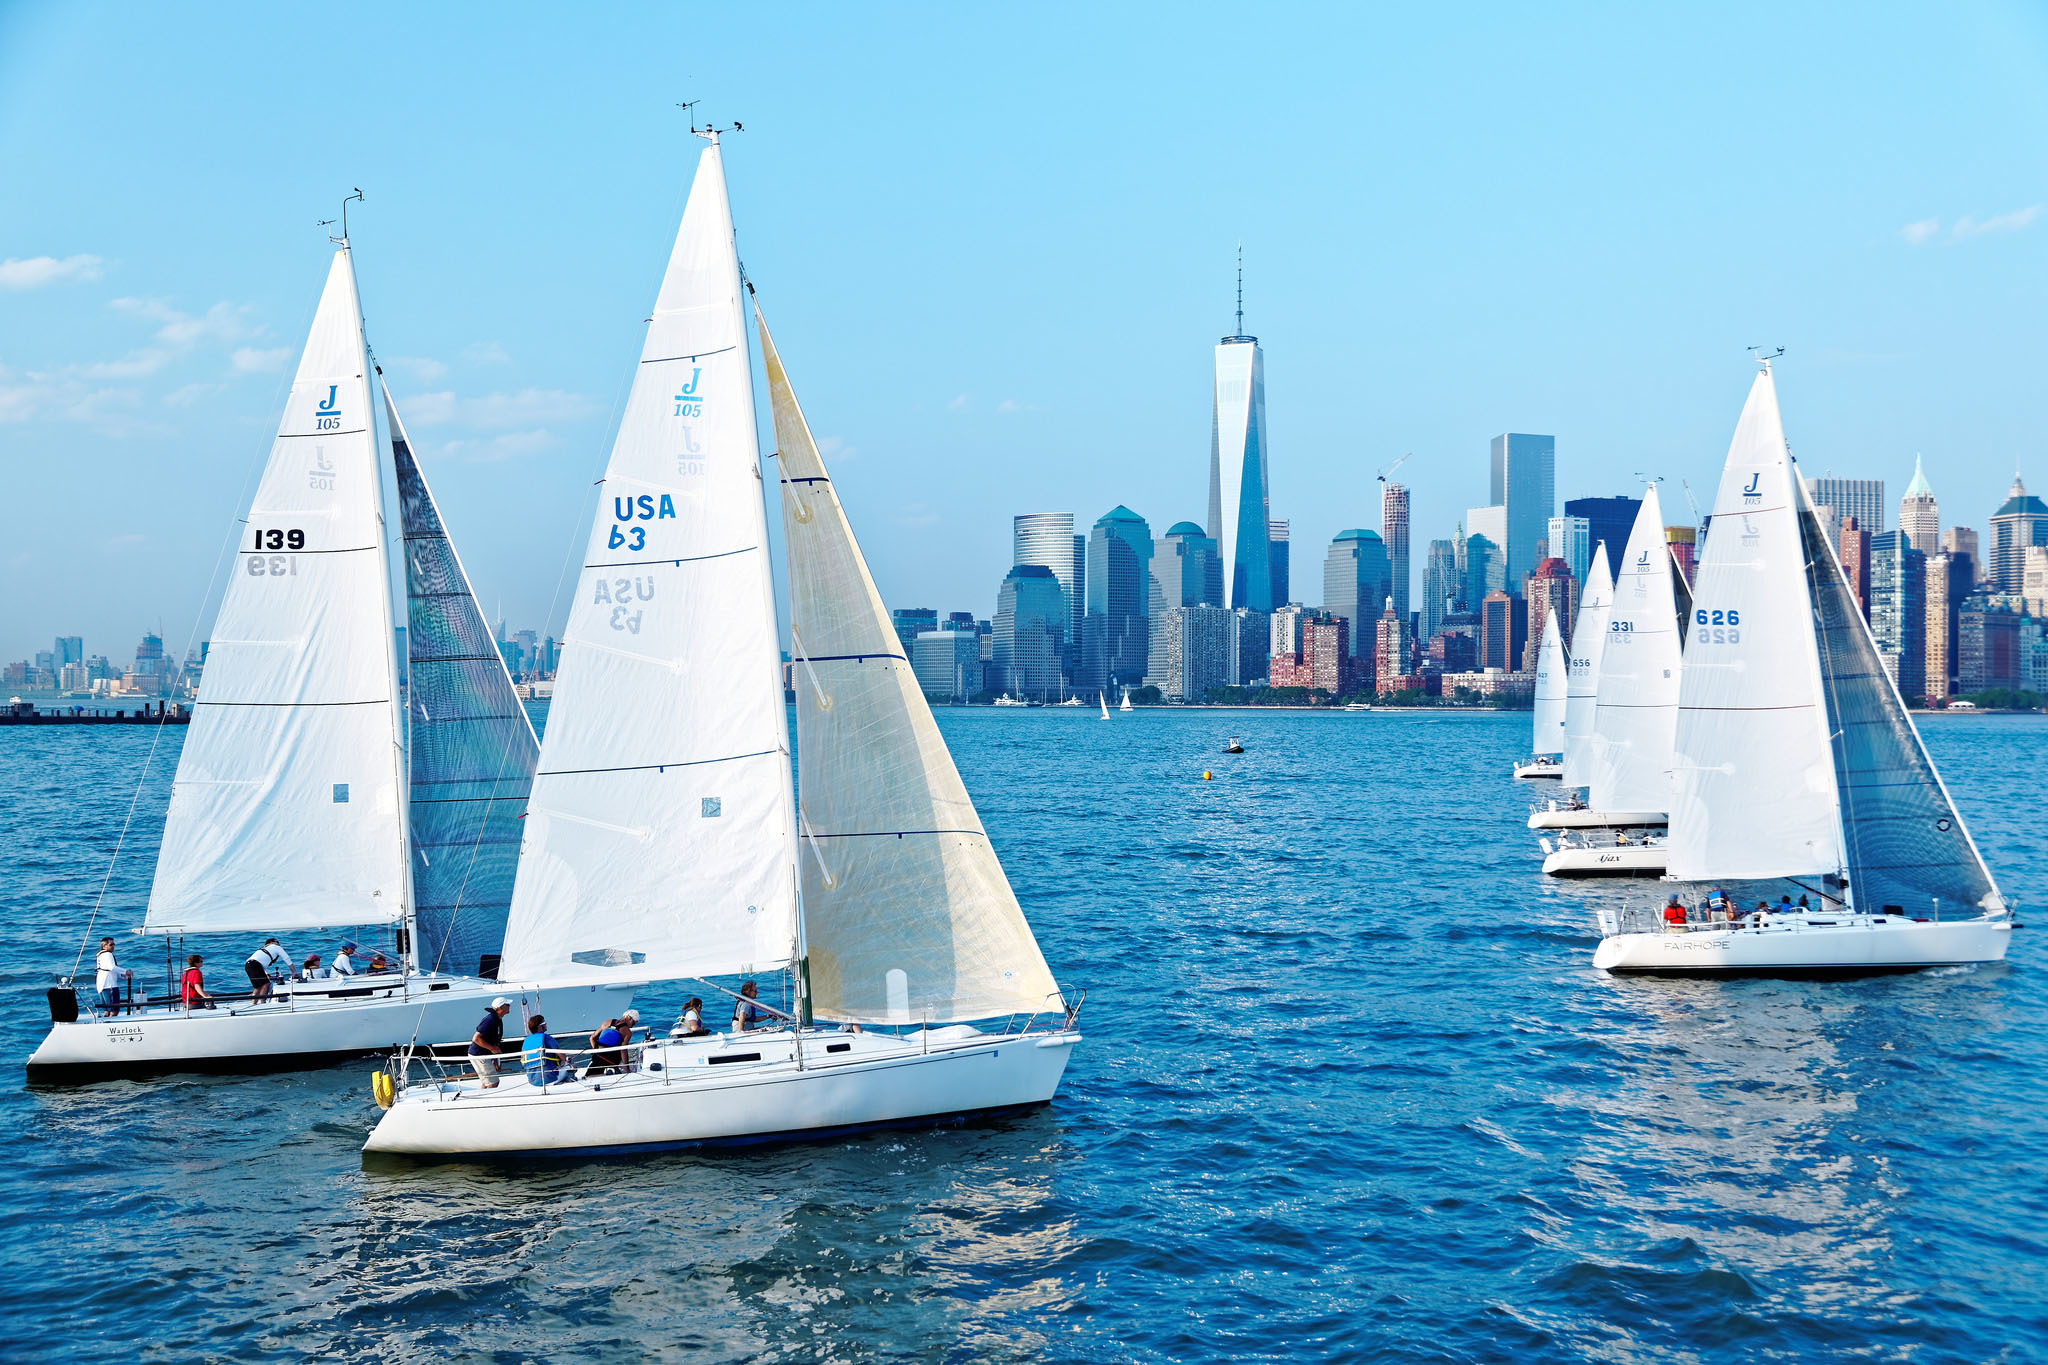 Sailing on the Hudson River